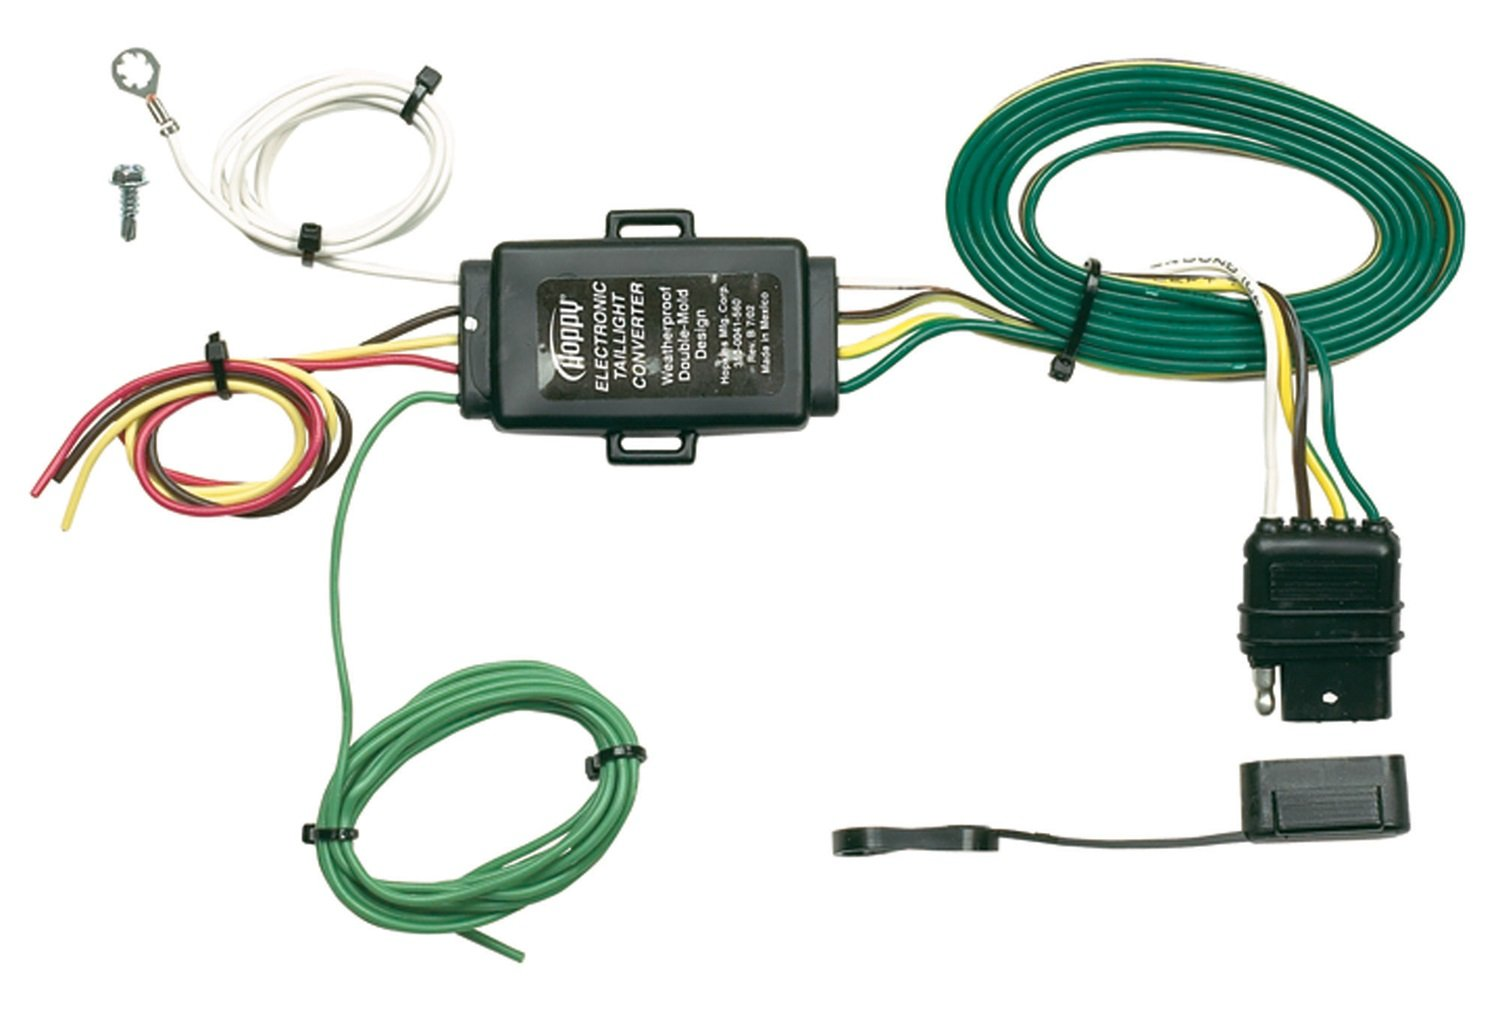 61WaHisQCLL._SL1500_ amazon com hopkins 48925 tail light converter with 4 wire flat hopkins trailer connector wiring diagram at creativeand.co